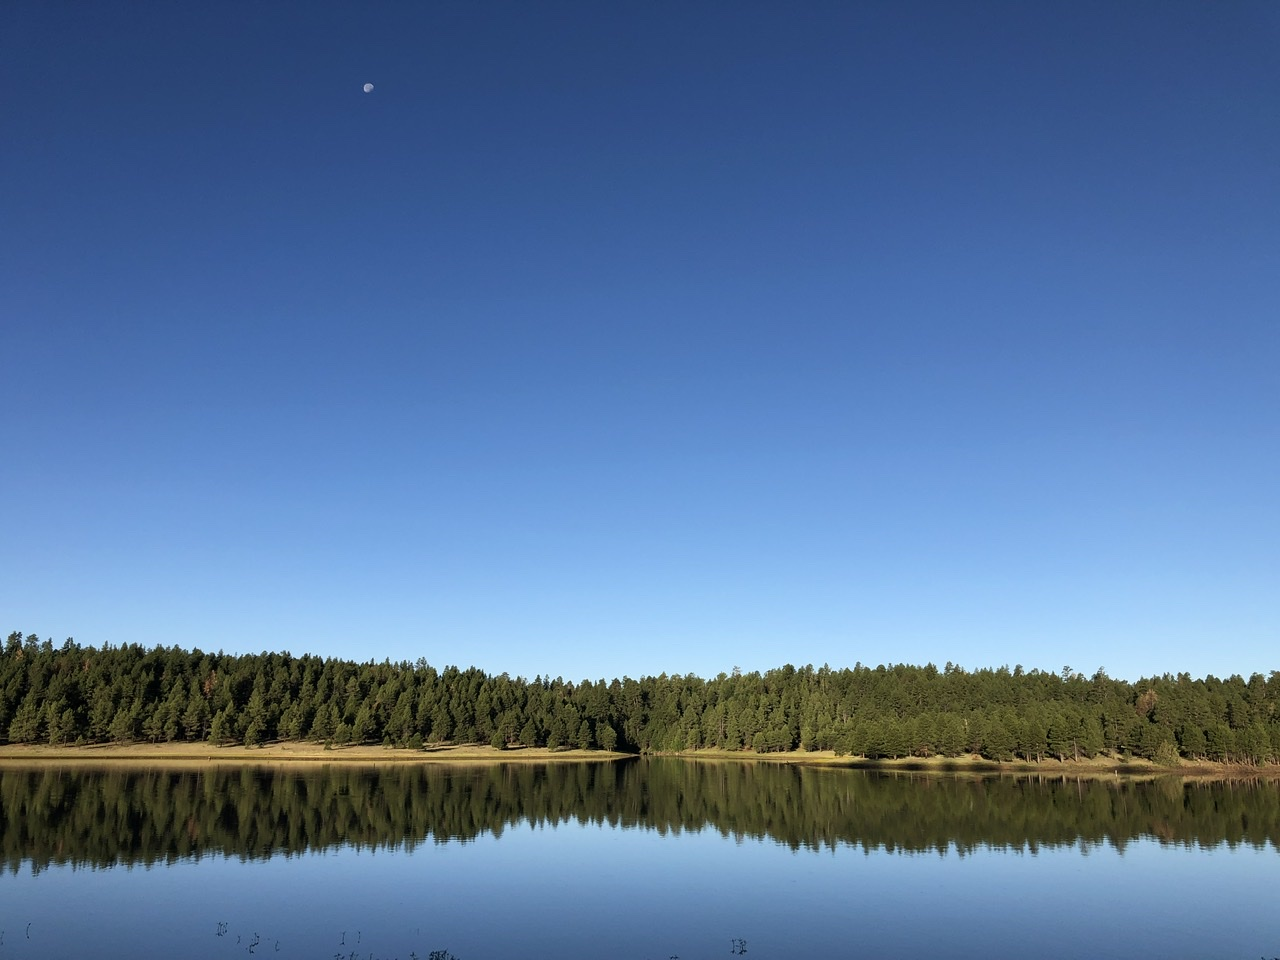 Trees and shoreline reflecting in a still lake, with a near full moon high overhead.